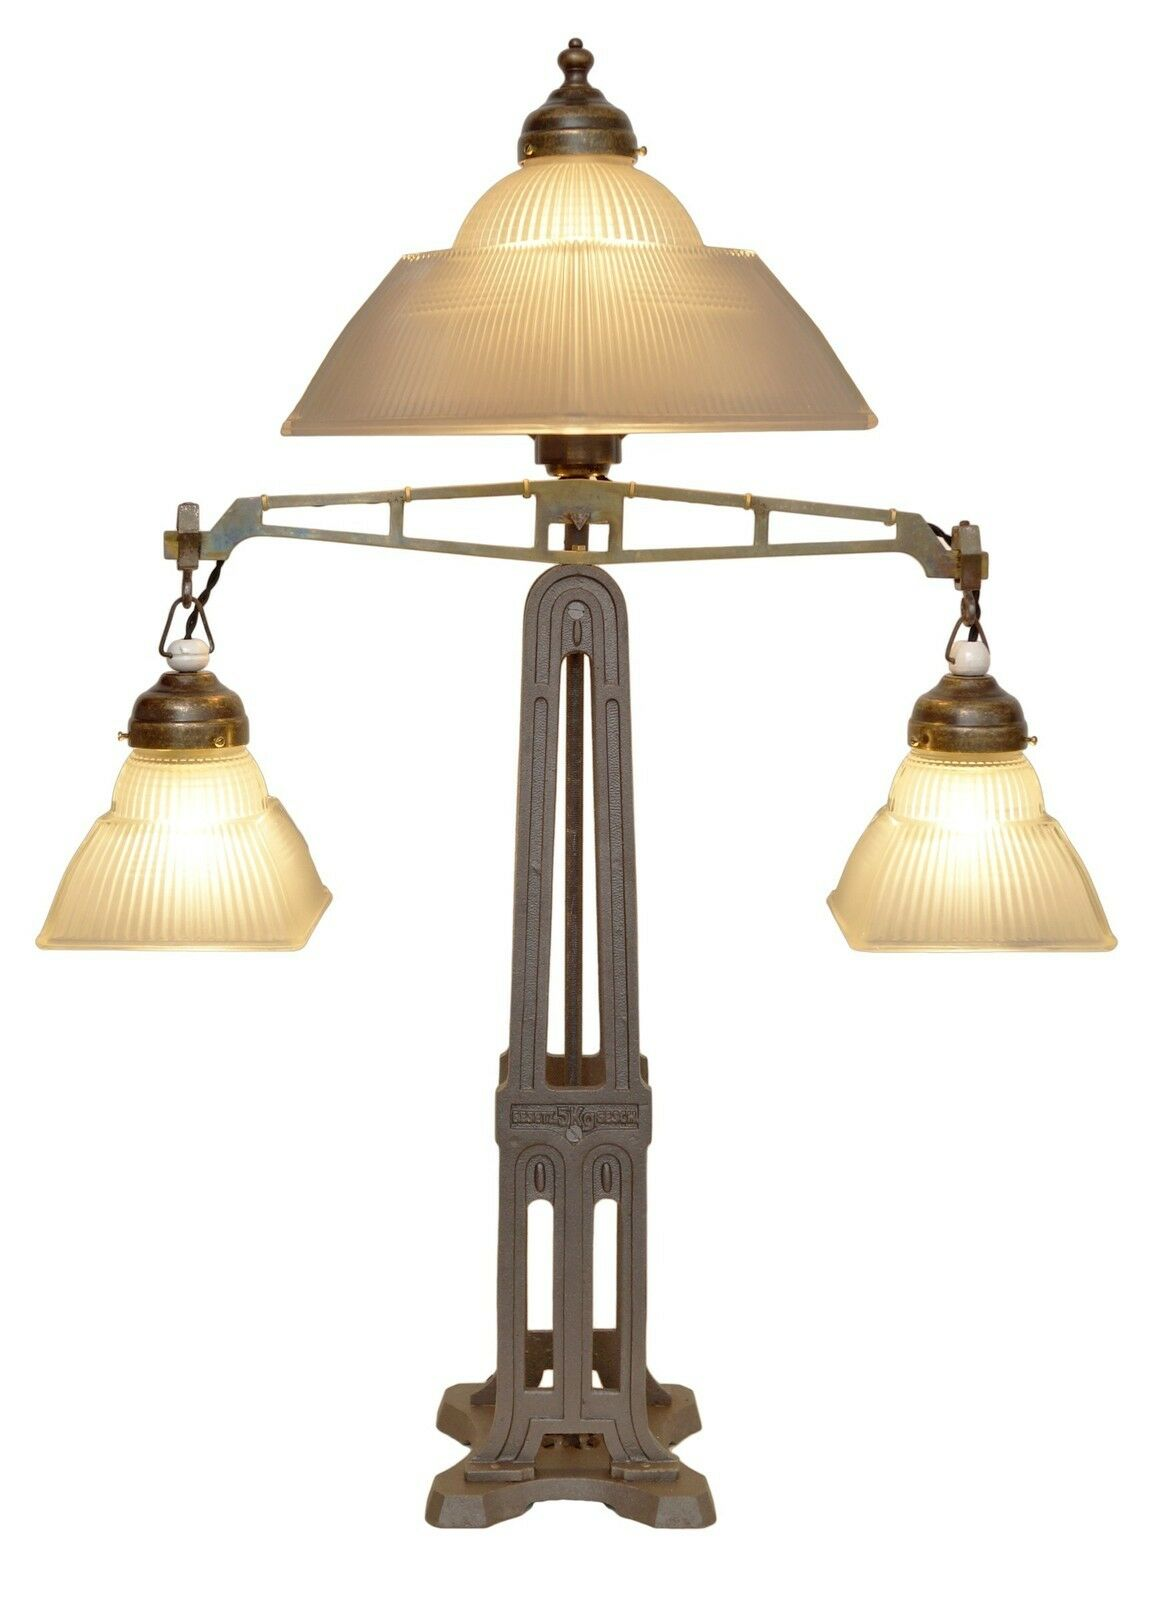 Unique Art Deco prunkleuchte Table Lamp